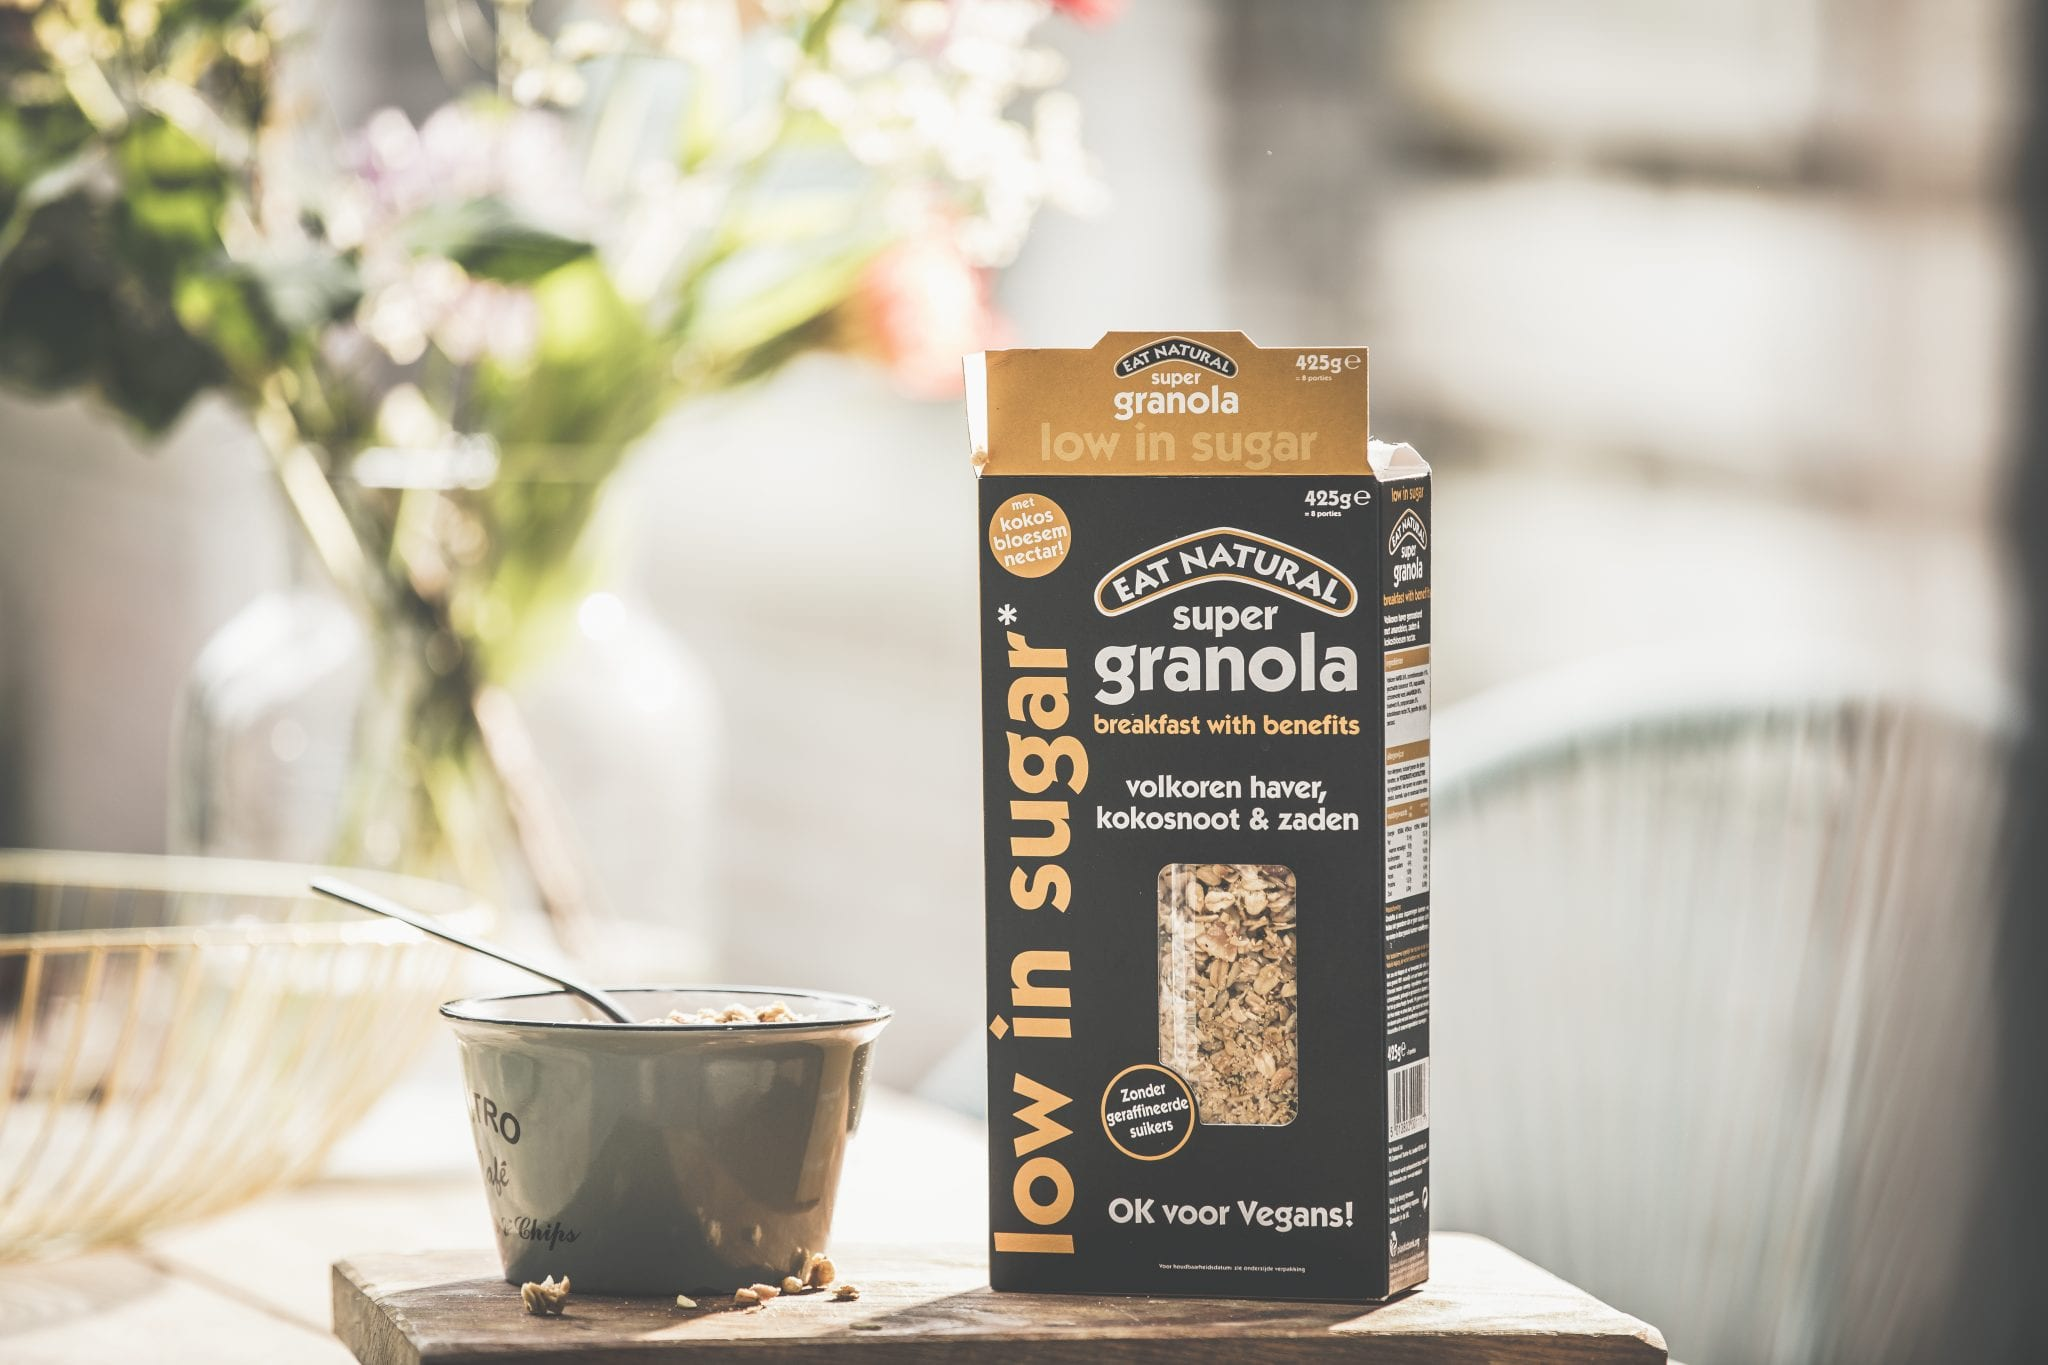 Eat Natural Low in Sugar Vegan Granola unbox